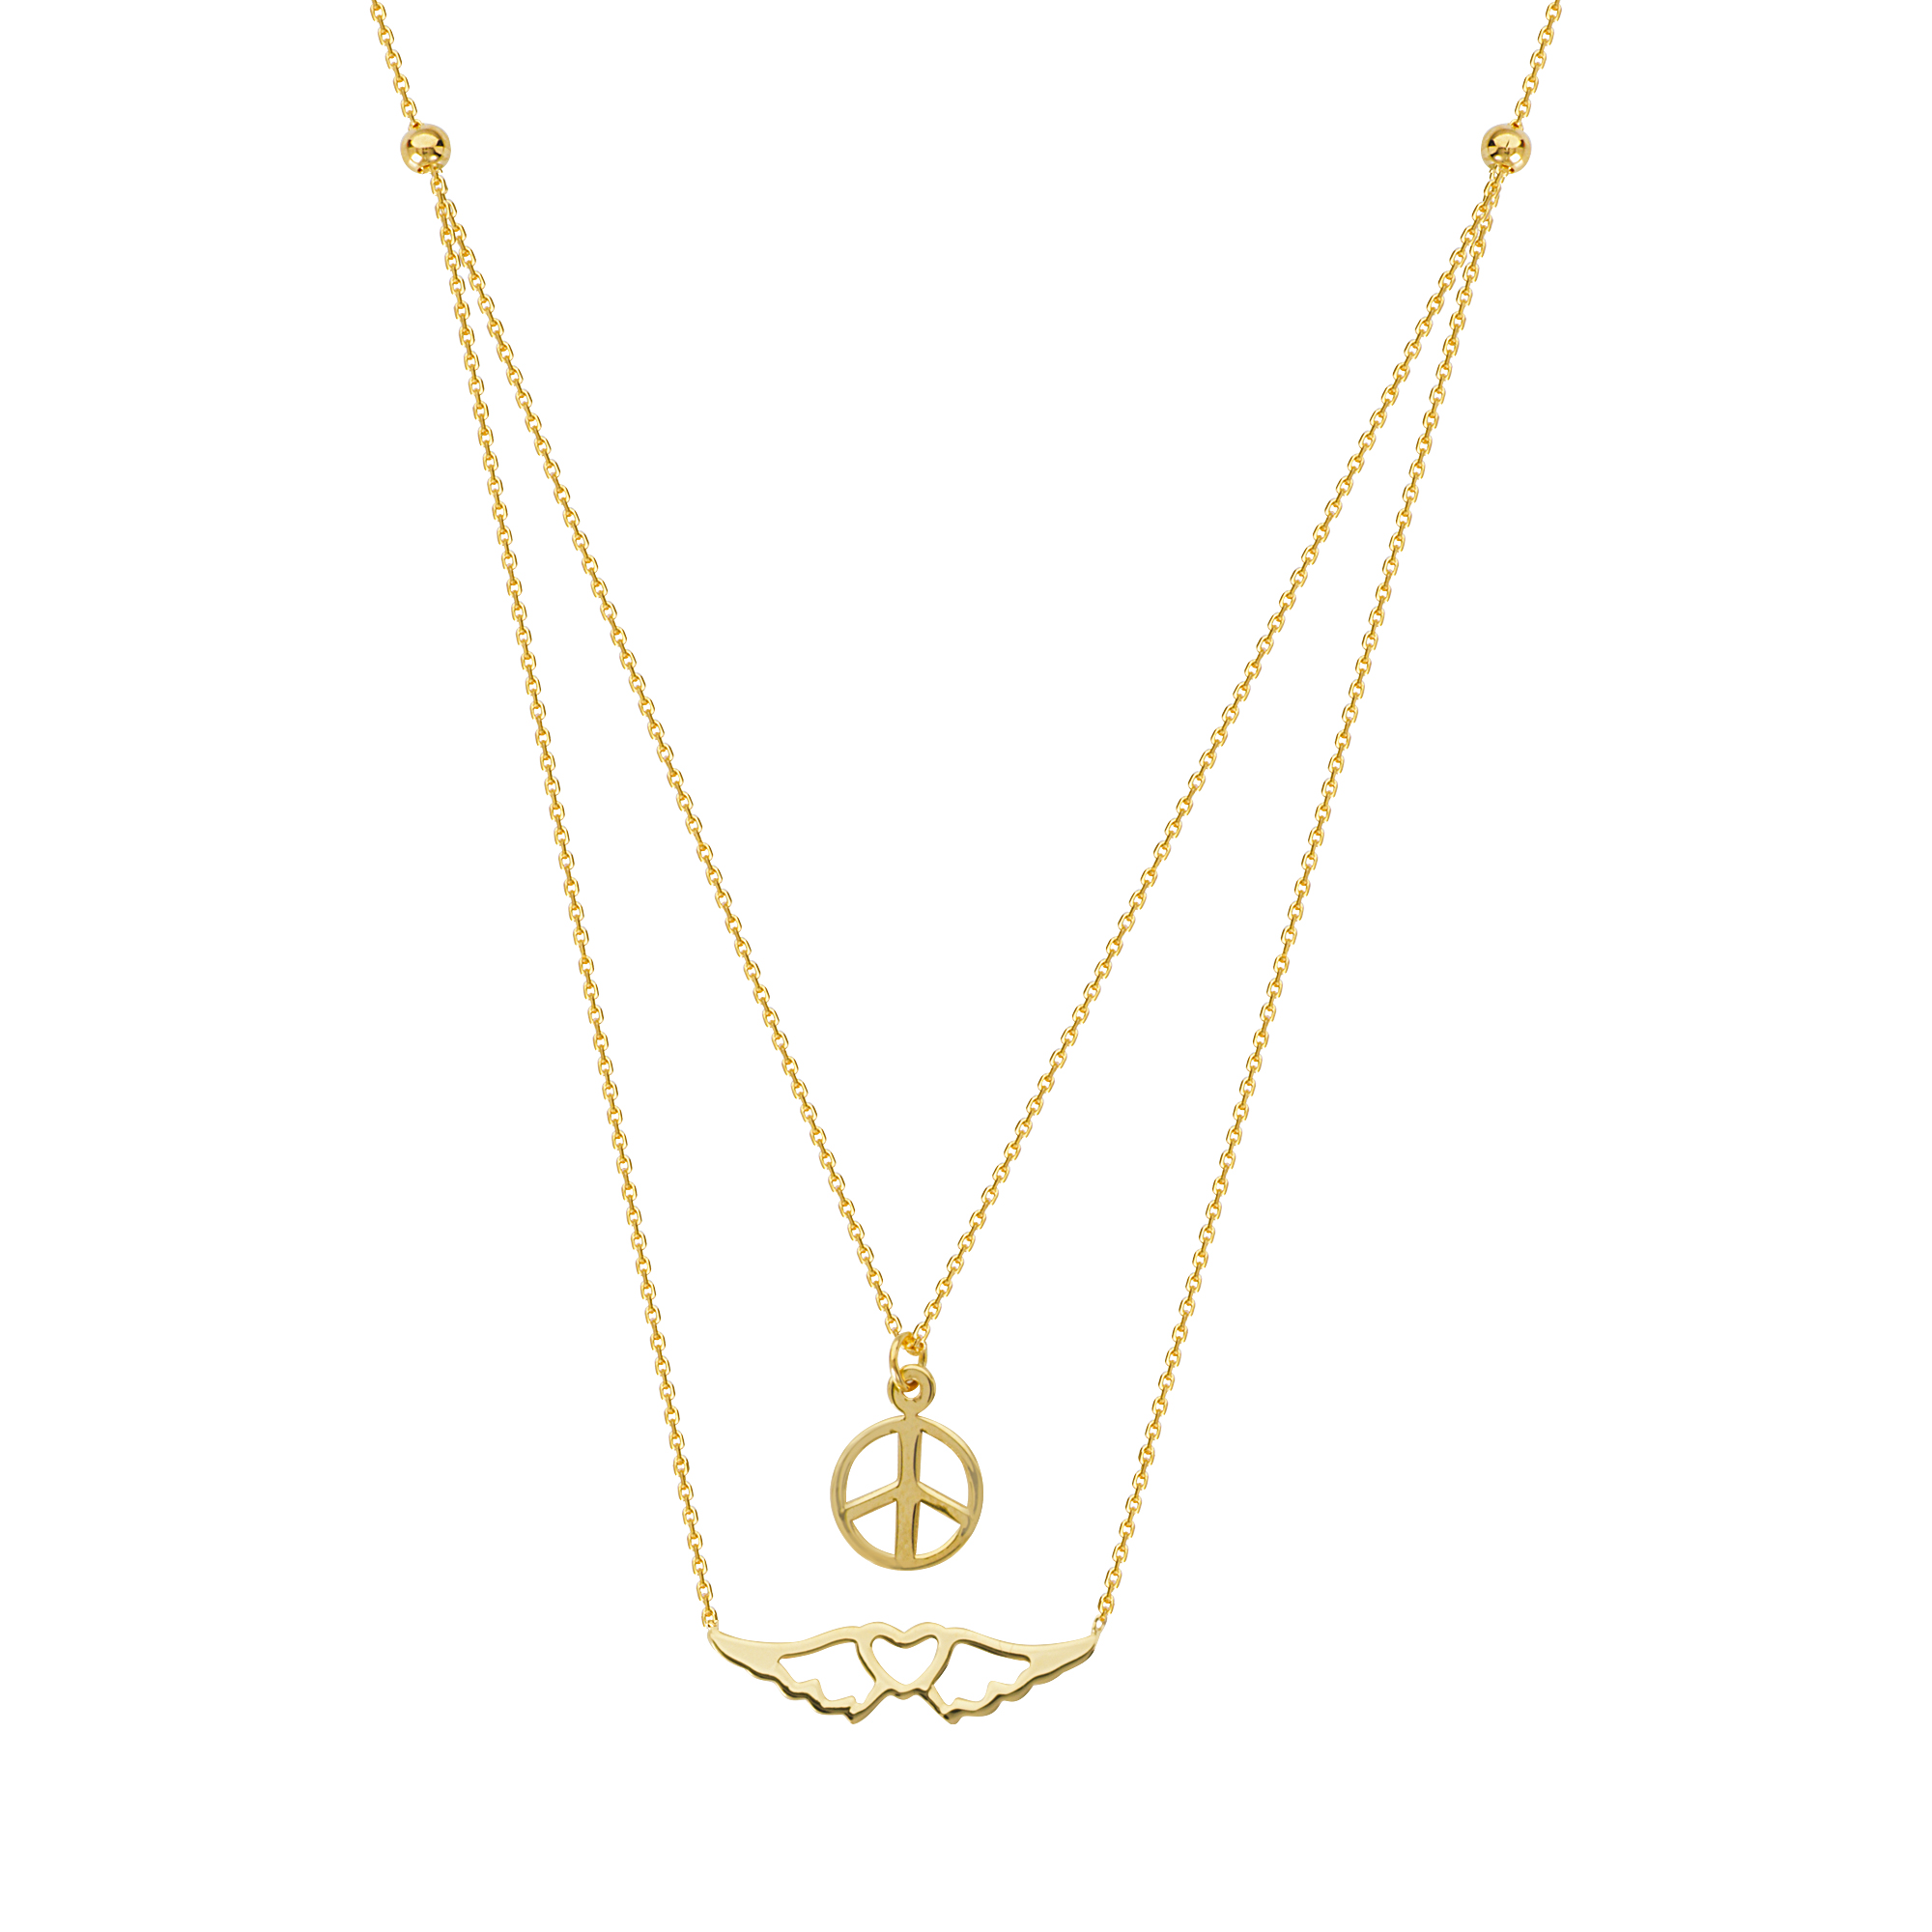 Peaceful Journey  Necklace, 14Kt Gold Peaceful Journey  18